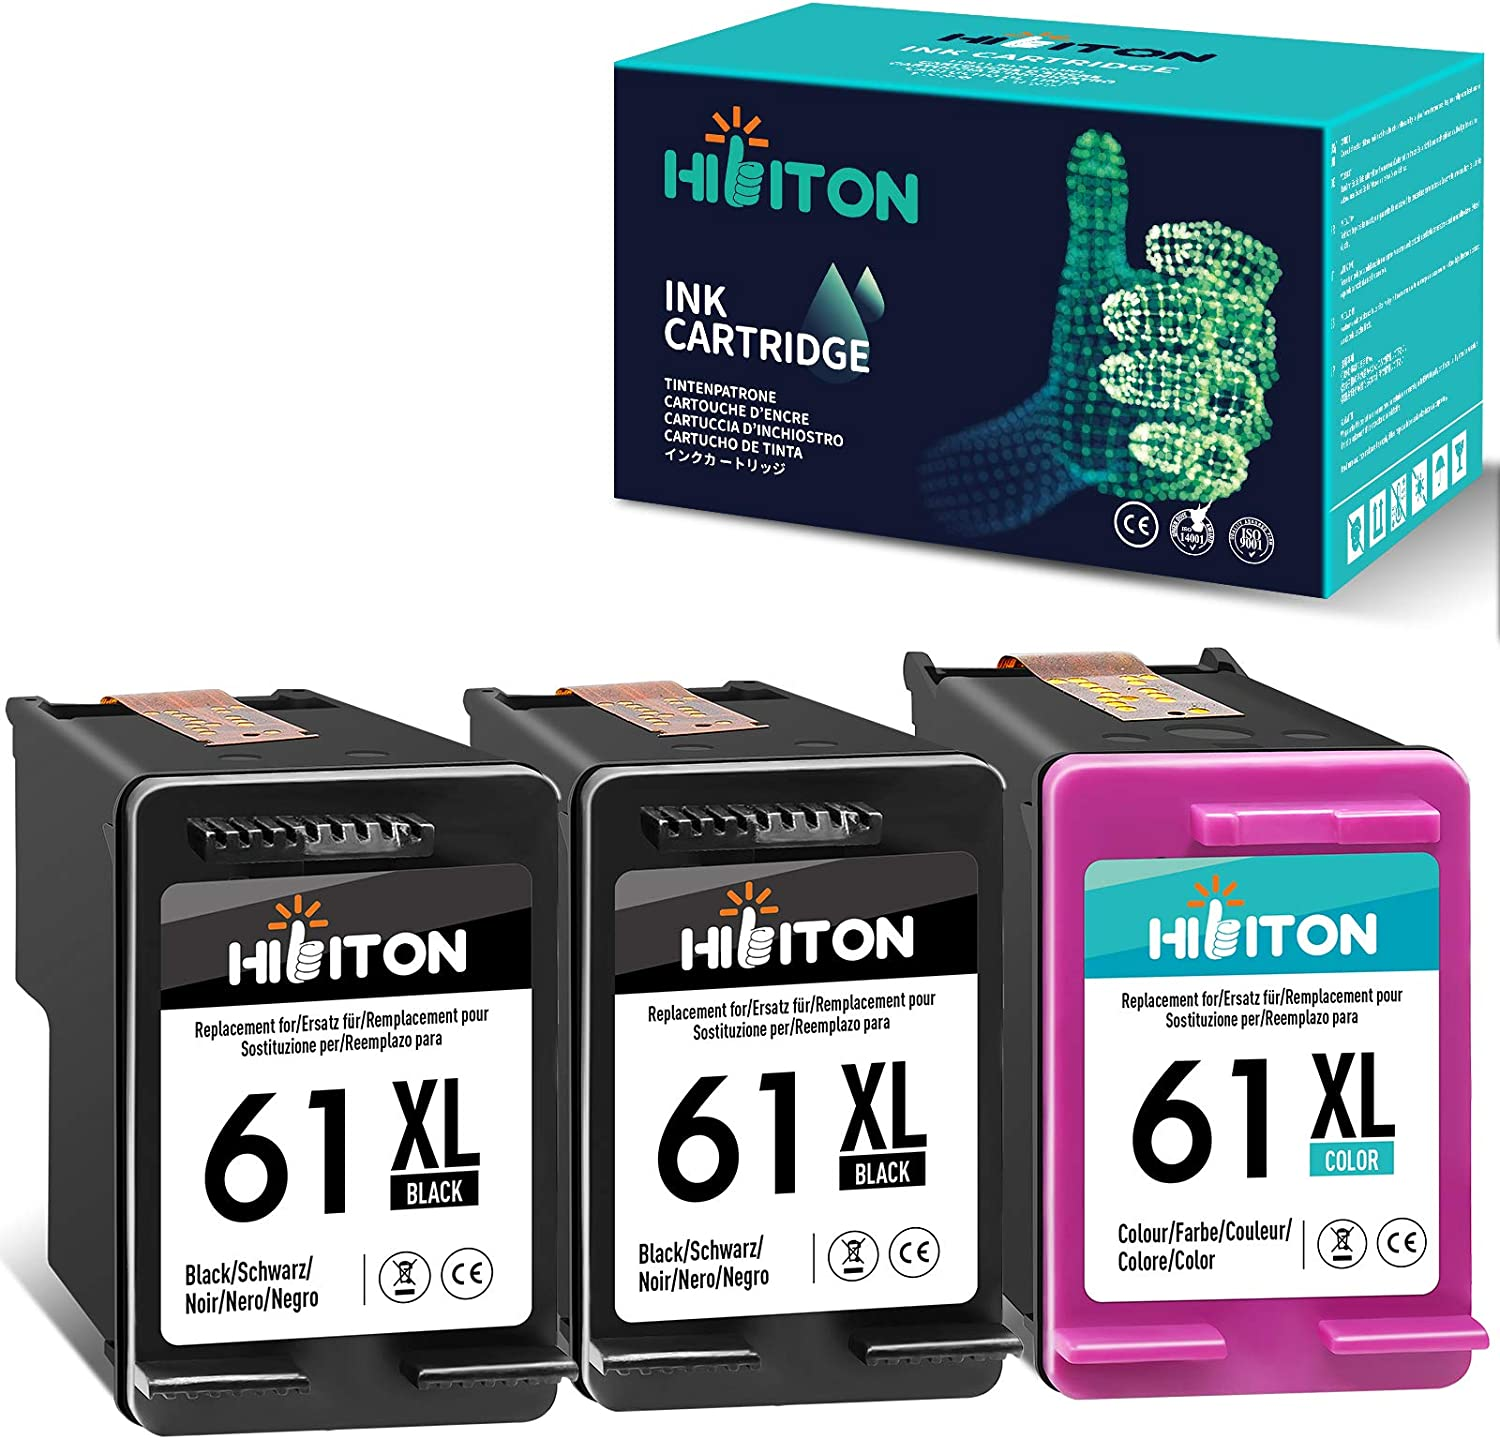 HibiTon Remanufactured Ink Cartridge Replacement for HP 61XL 61 XL Work with Envy 4500 4502 5530 DeskJet 2512 1512 2542 2540 2544 3000 3052a 1055 3051a OfficeJet 4630 Printer (Black,Tri-Color) 3 Pack